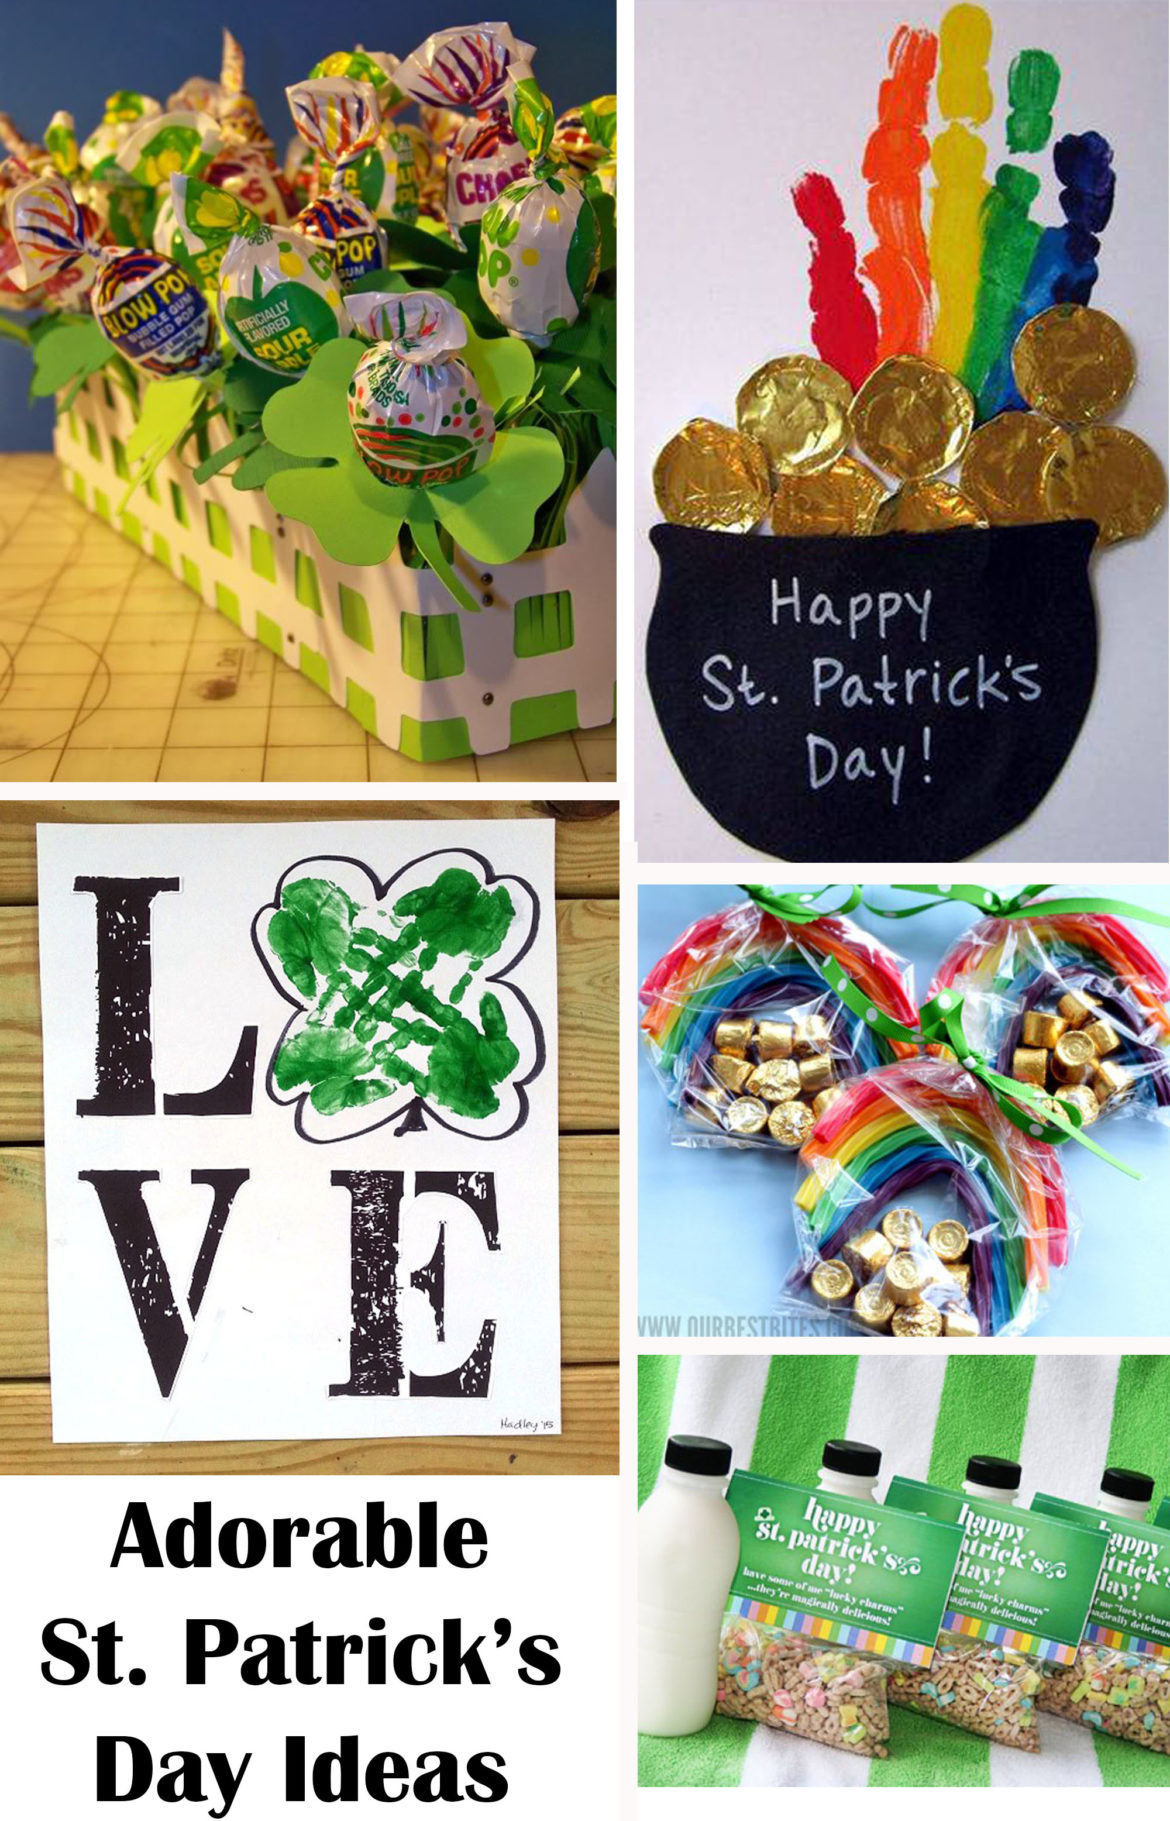 adorable st patricks day ideas